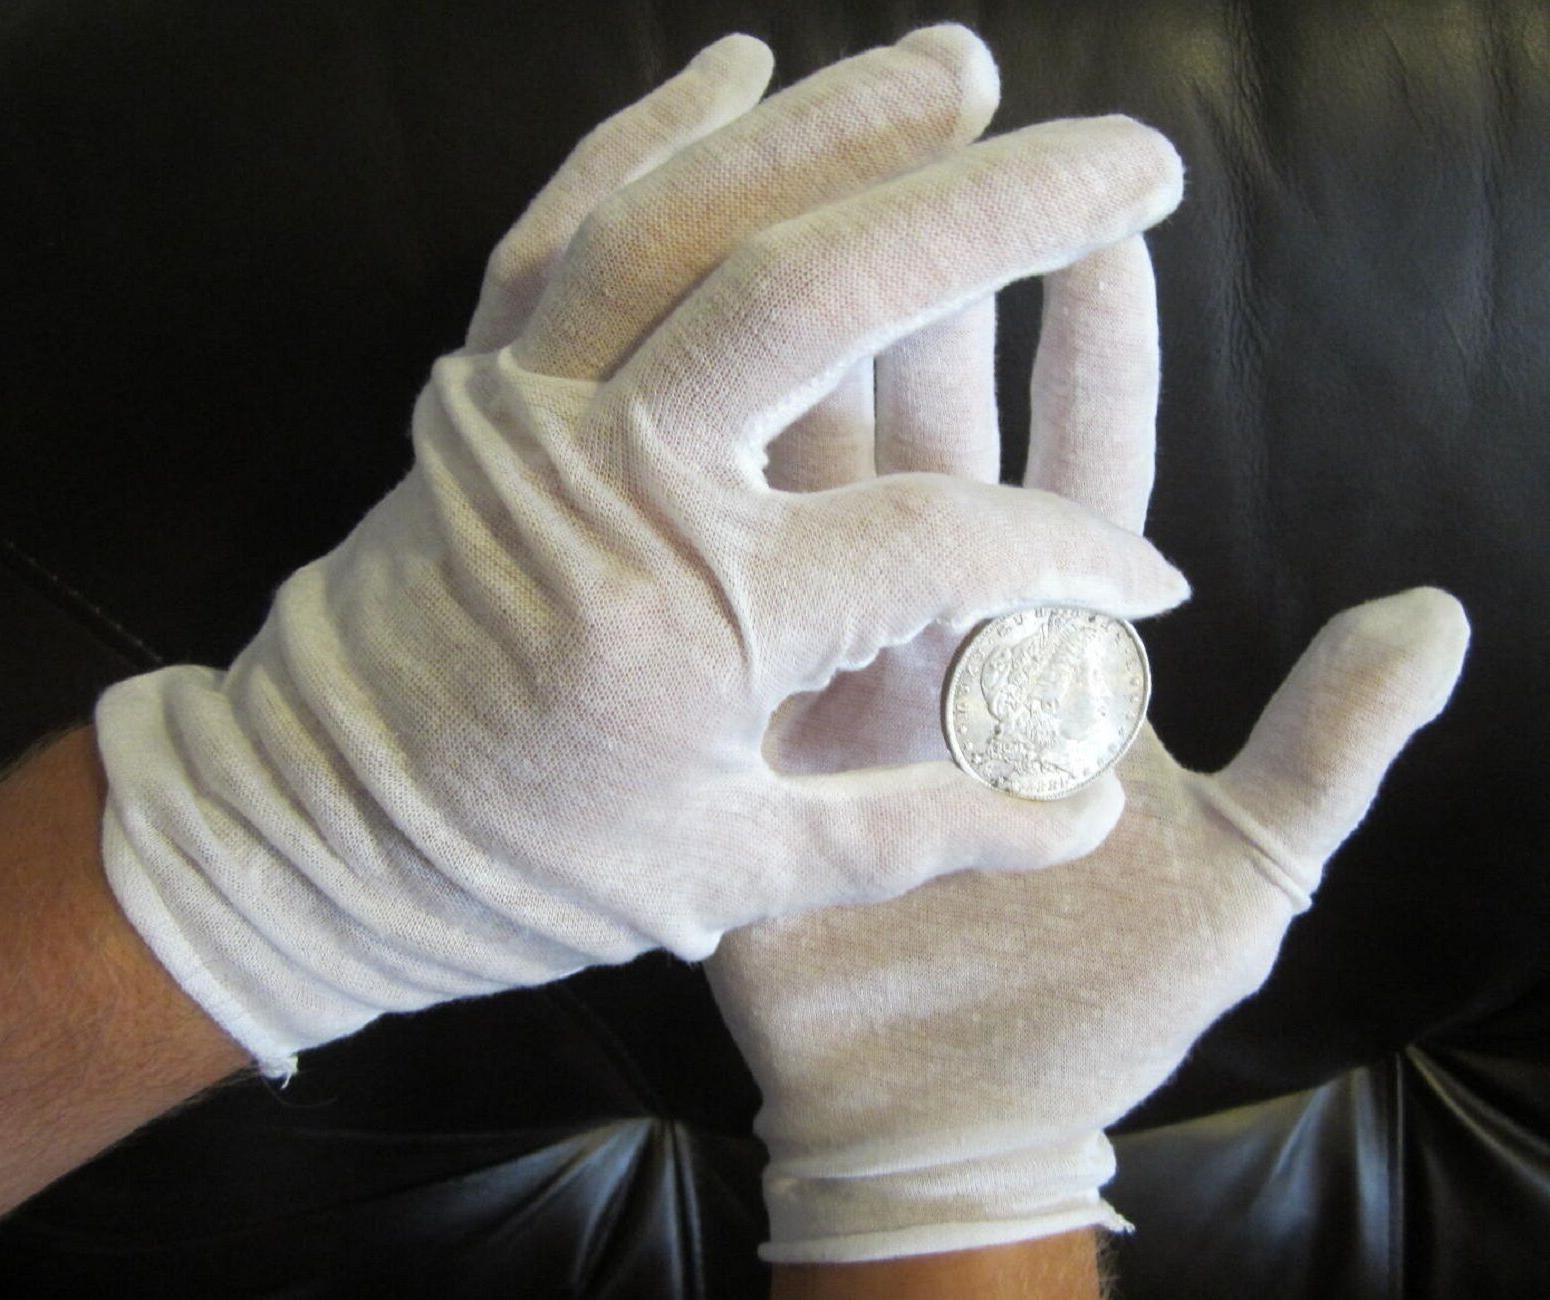 20 PAIRS WHITE COIN INSPECTION GLOVES COTTON LISLE OR BLEND